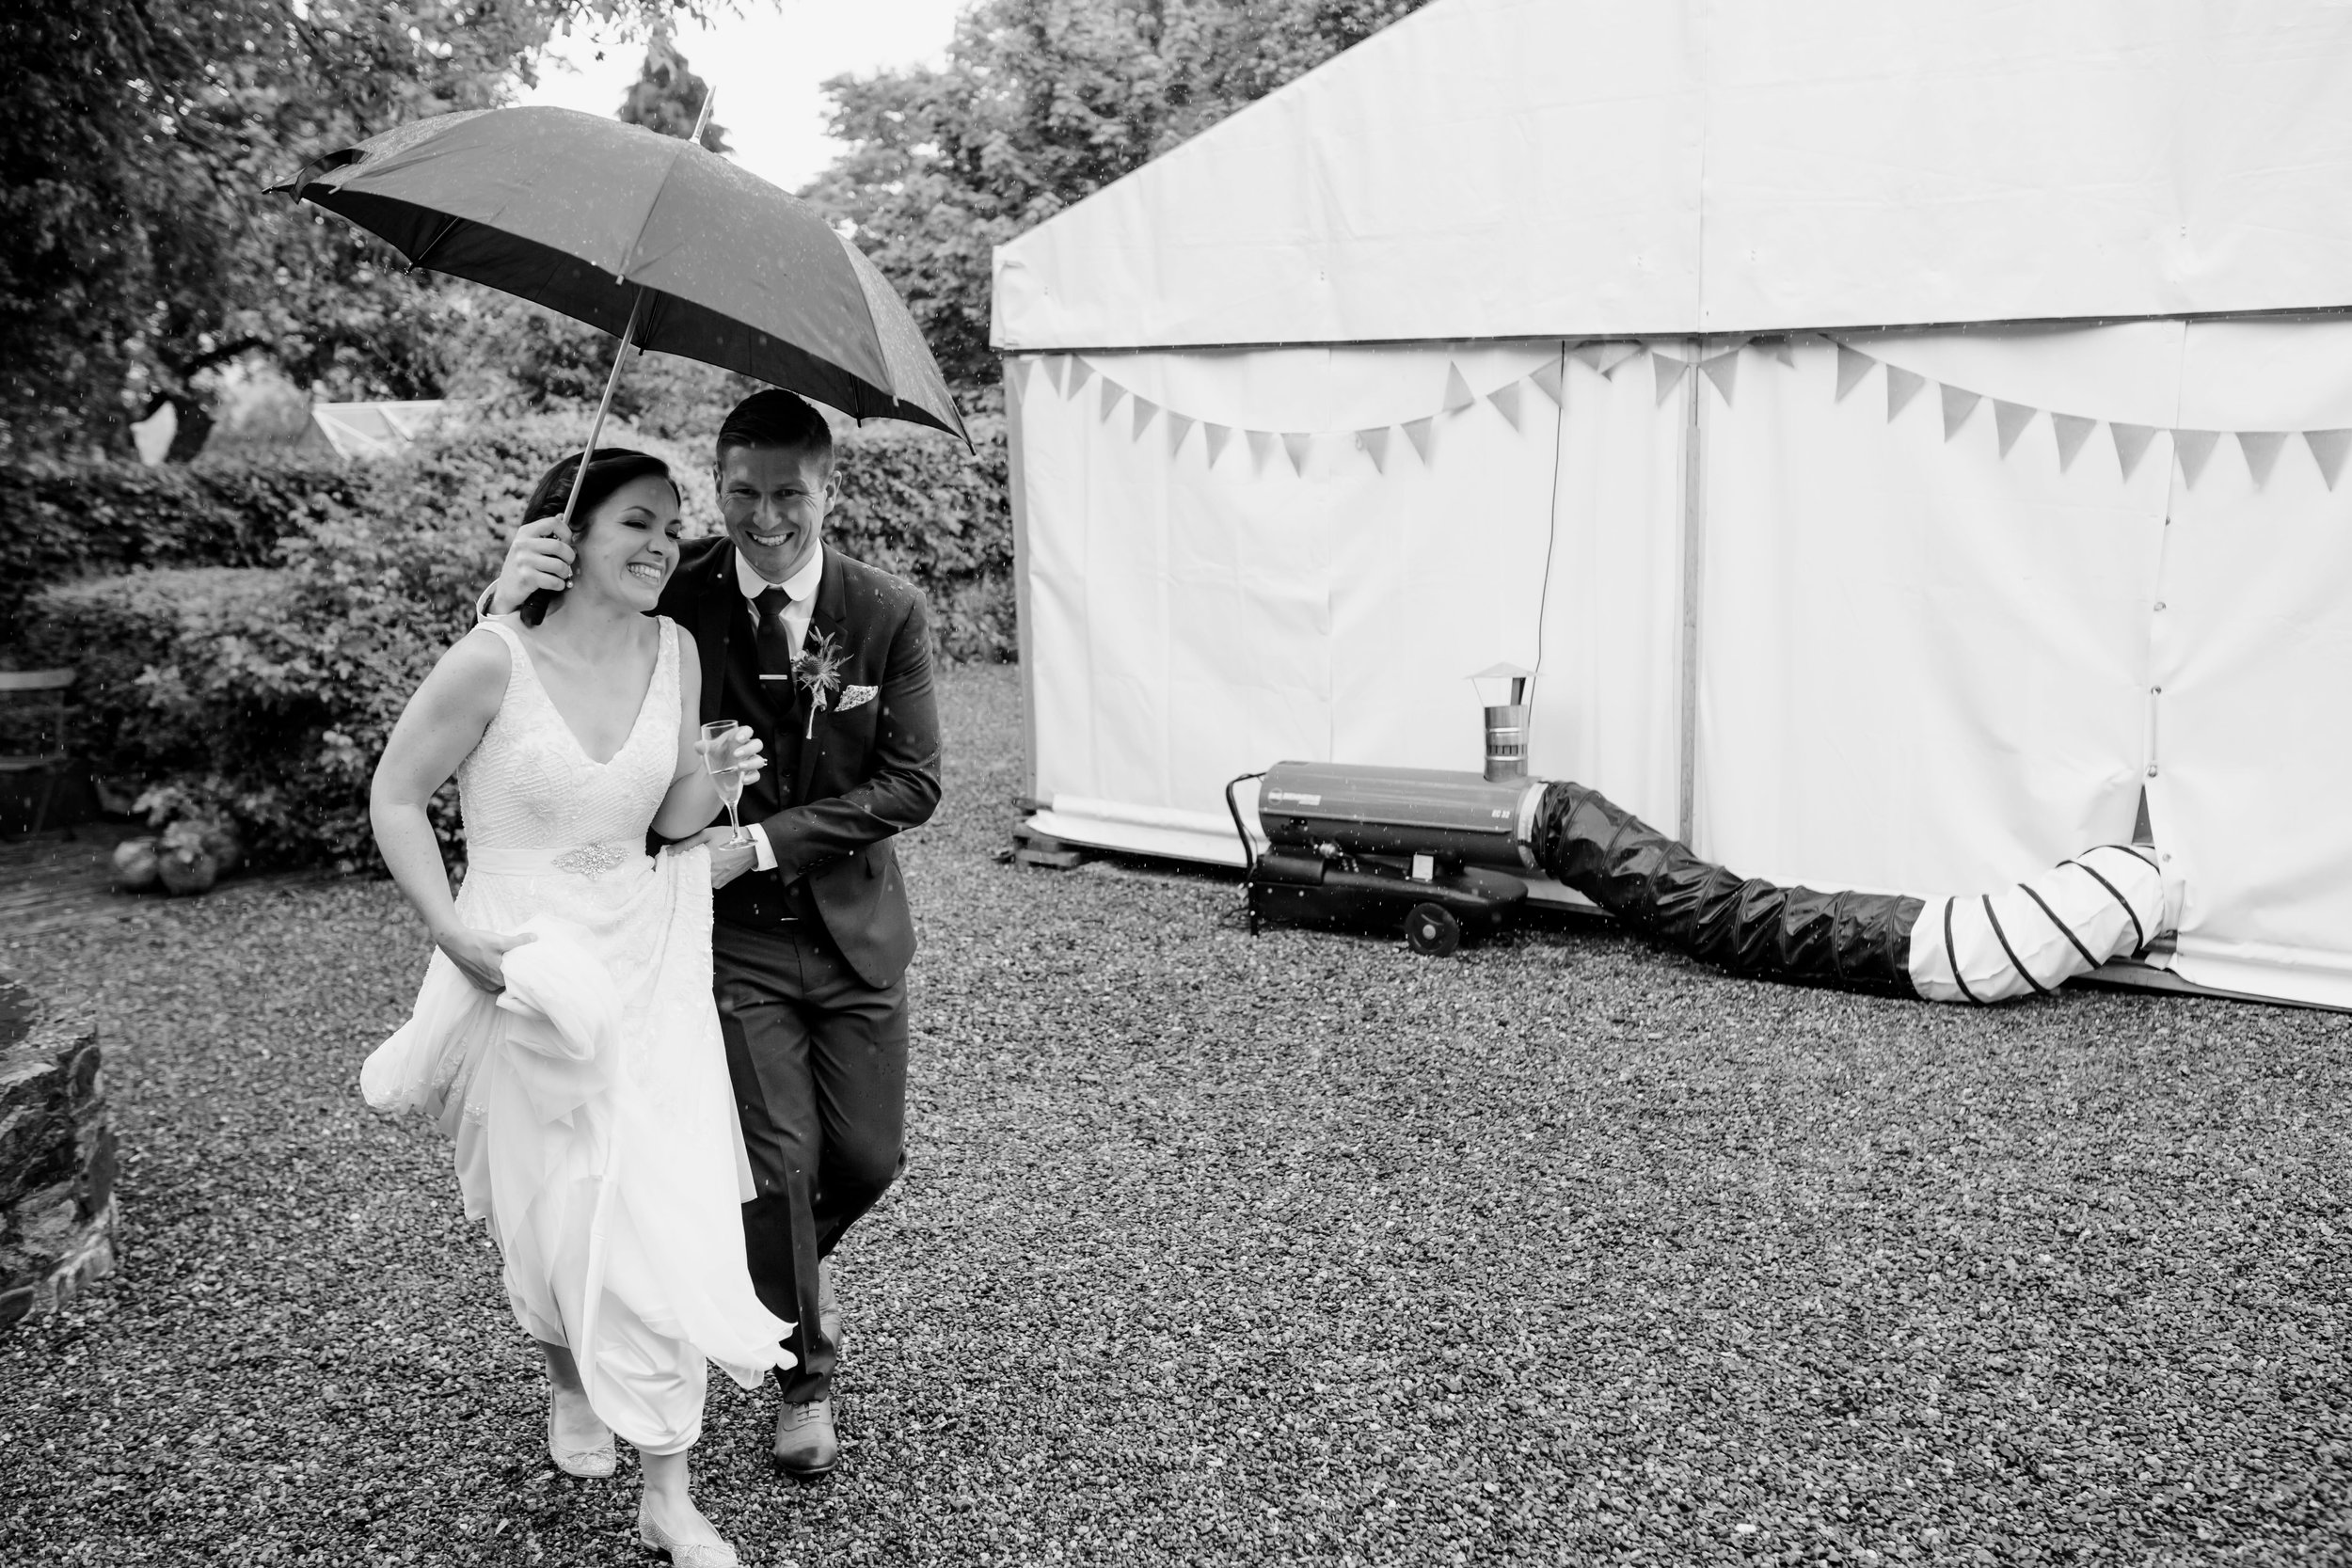 e+t_ballilogue_kilkenny_wedding_photographer_liviafigueiredo_142.JPG